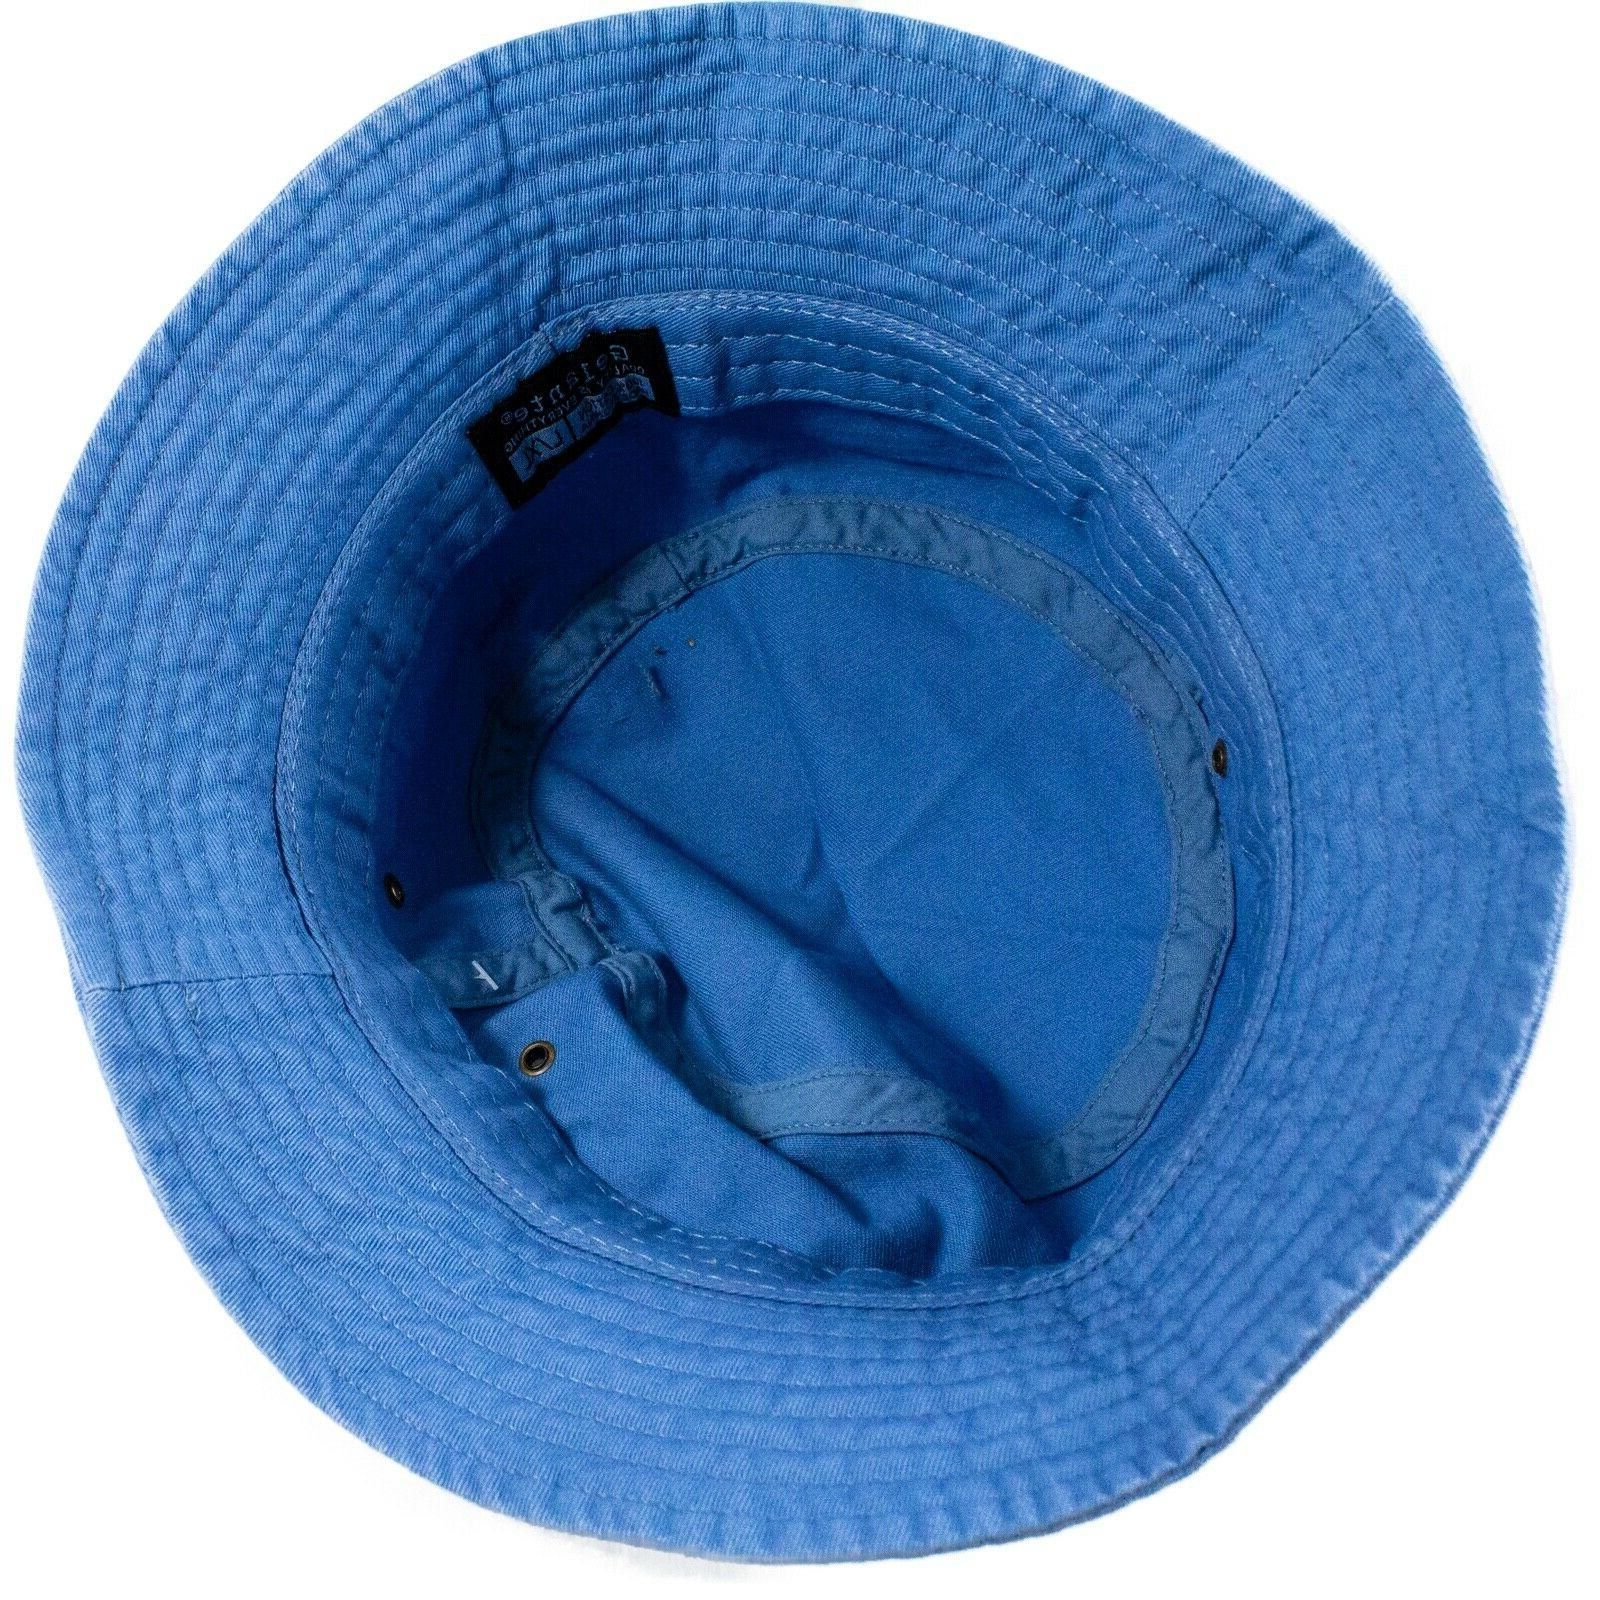 Unisex Cotton Bucket Hat Safari Boonie Sun